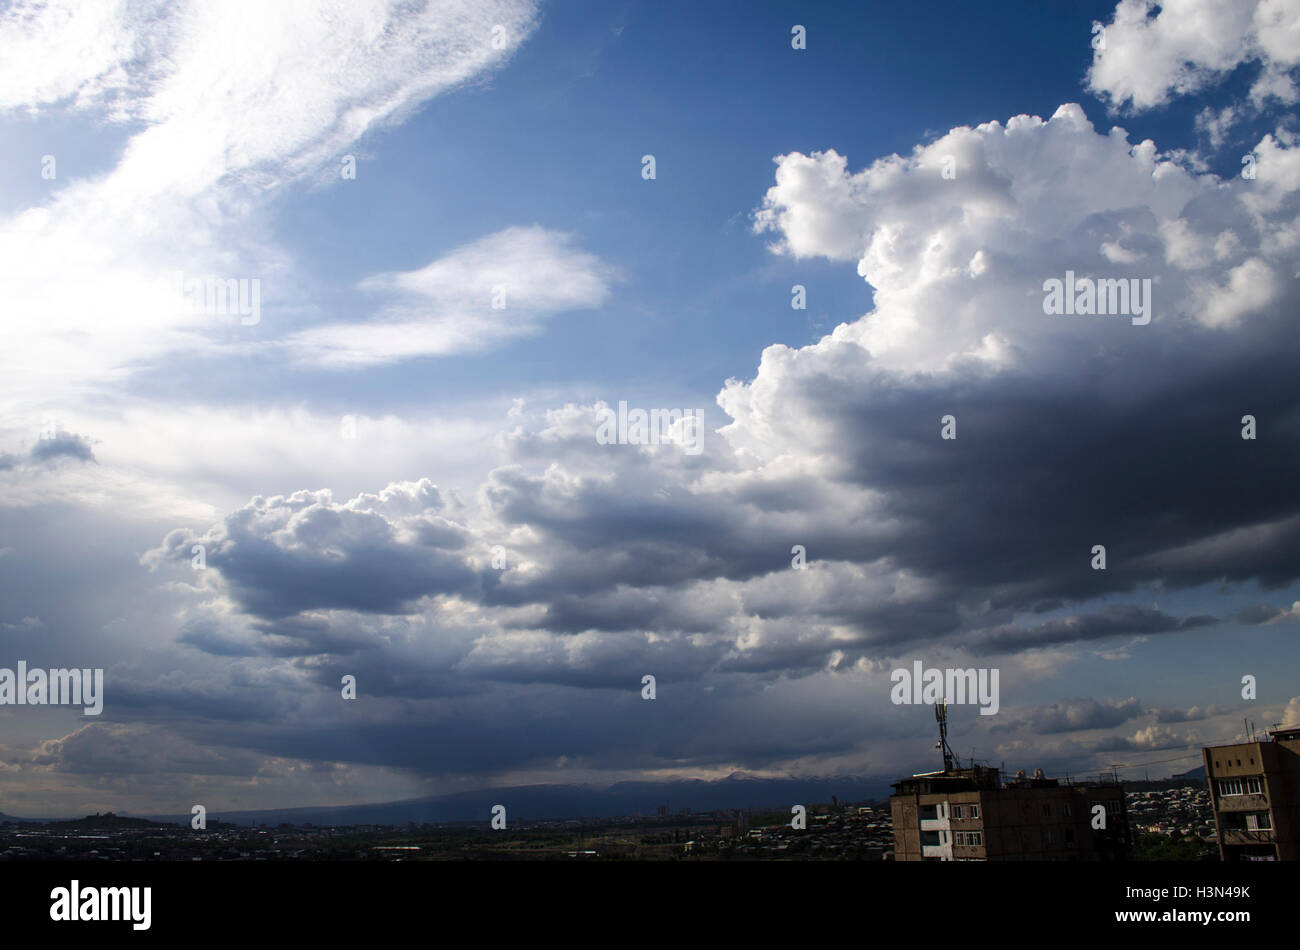 Dark rainy clouds all over the city - Stock Image